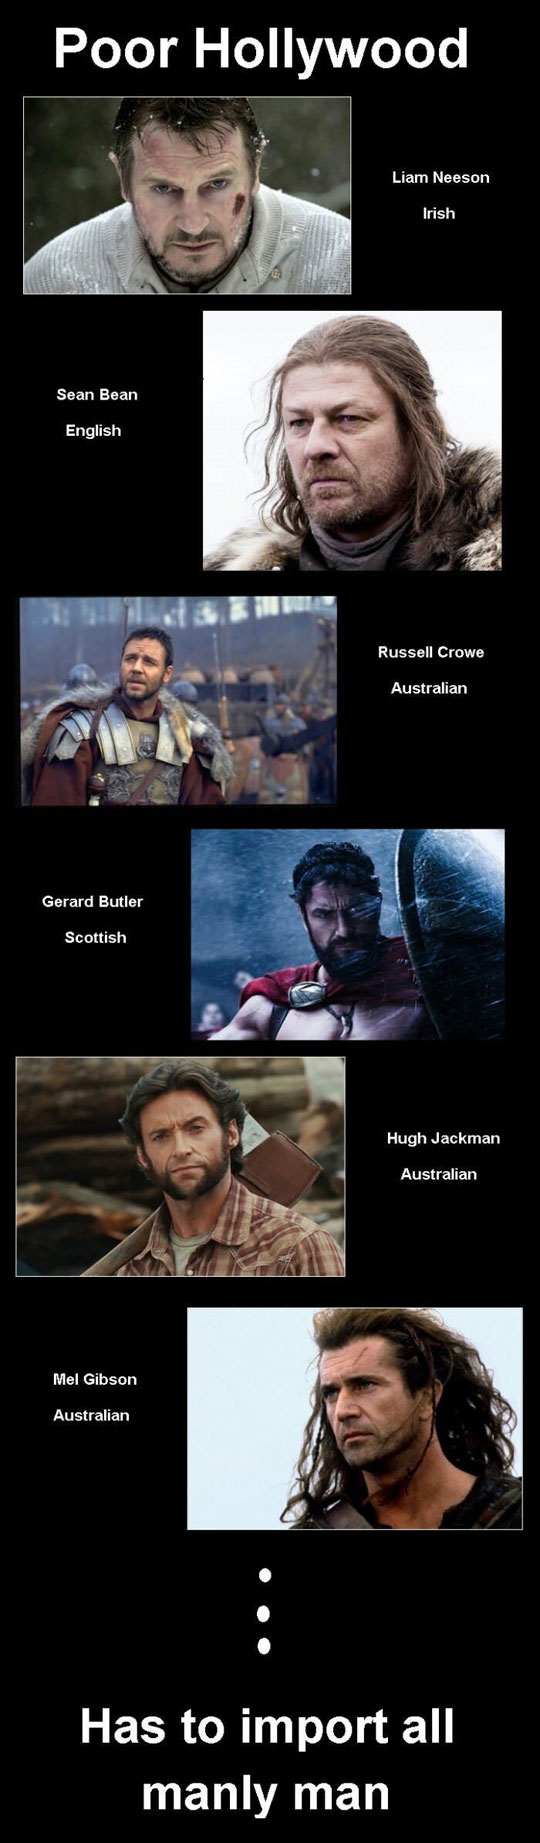 funny-Hollywood-manly-man-import